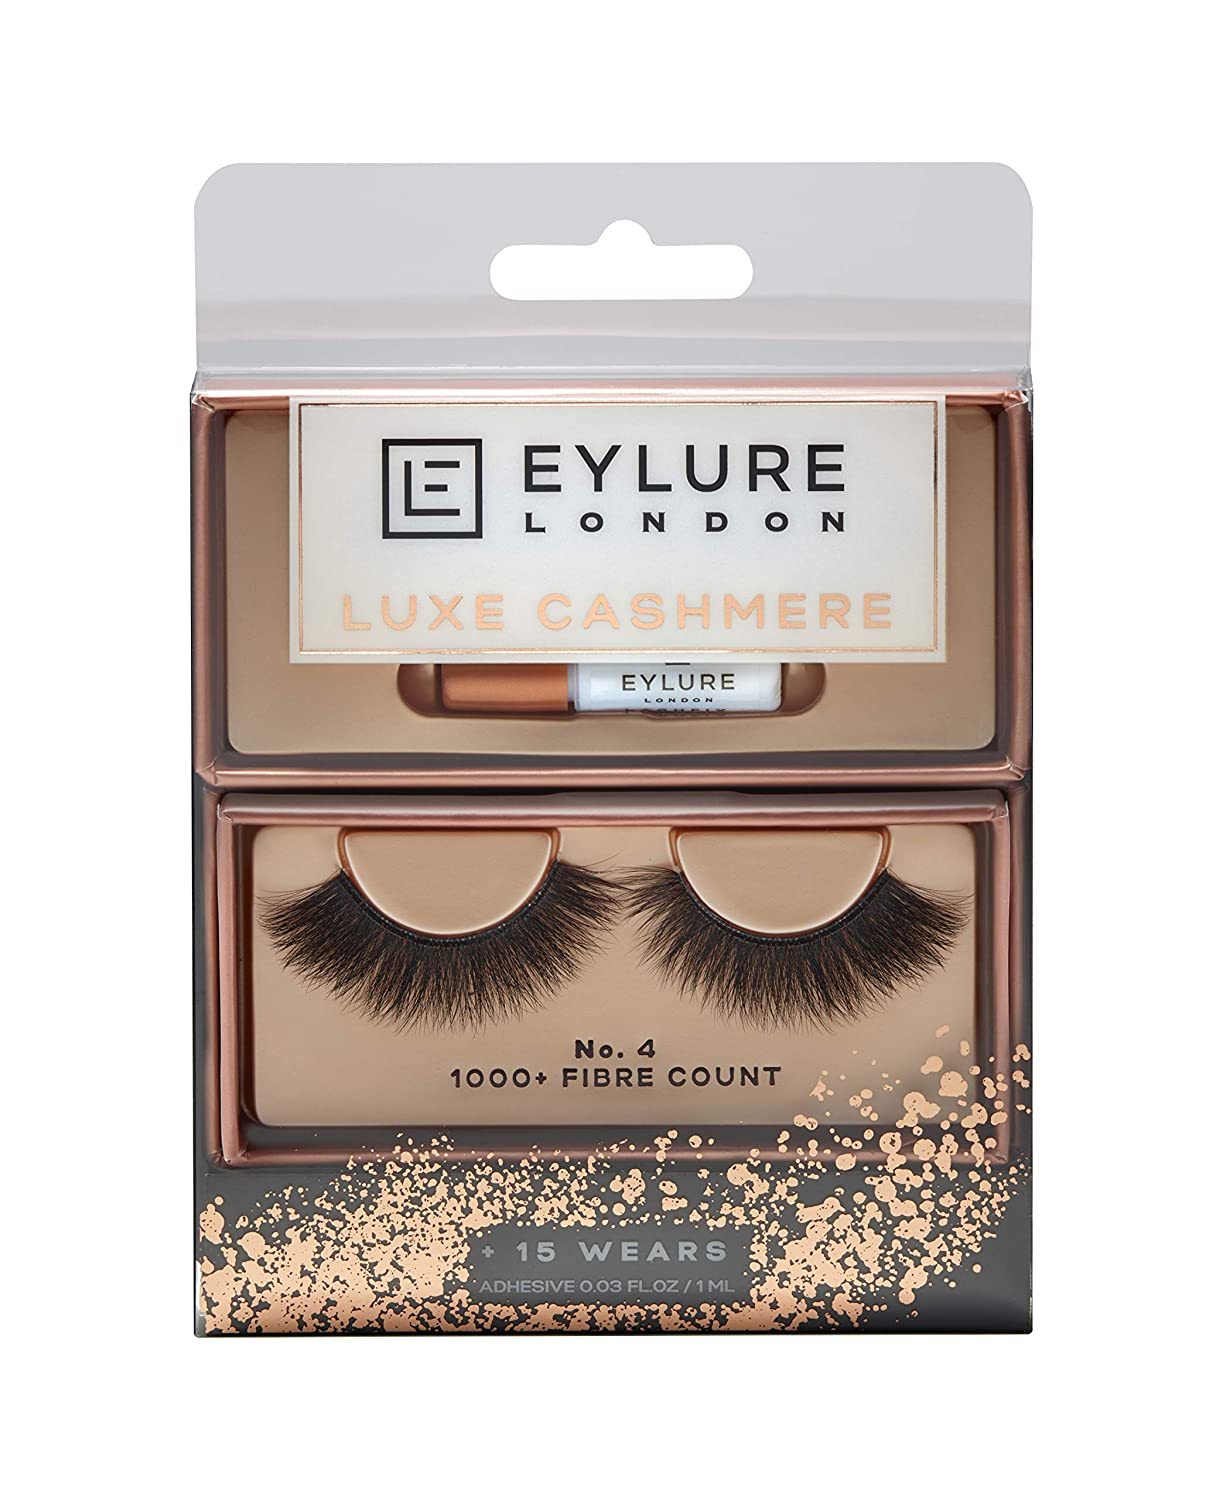 Eylure Luxe Cashmere Lashes, No. 18